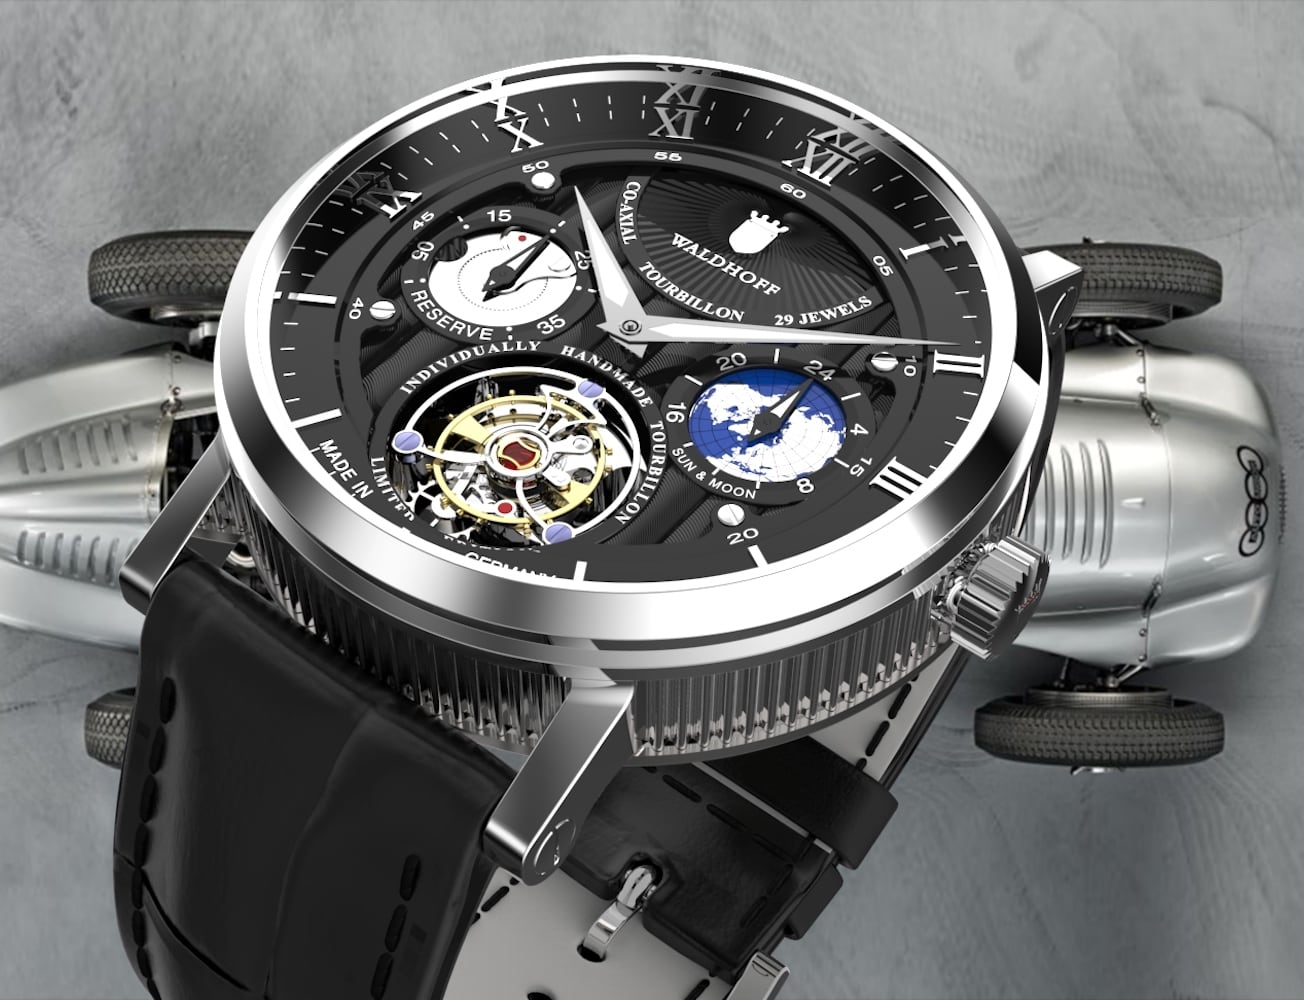 Waldhoff Co-Axial Tourbillon Movement Watches